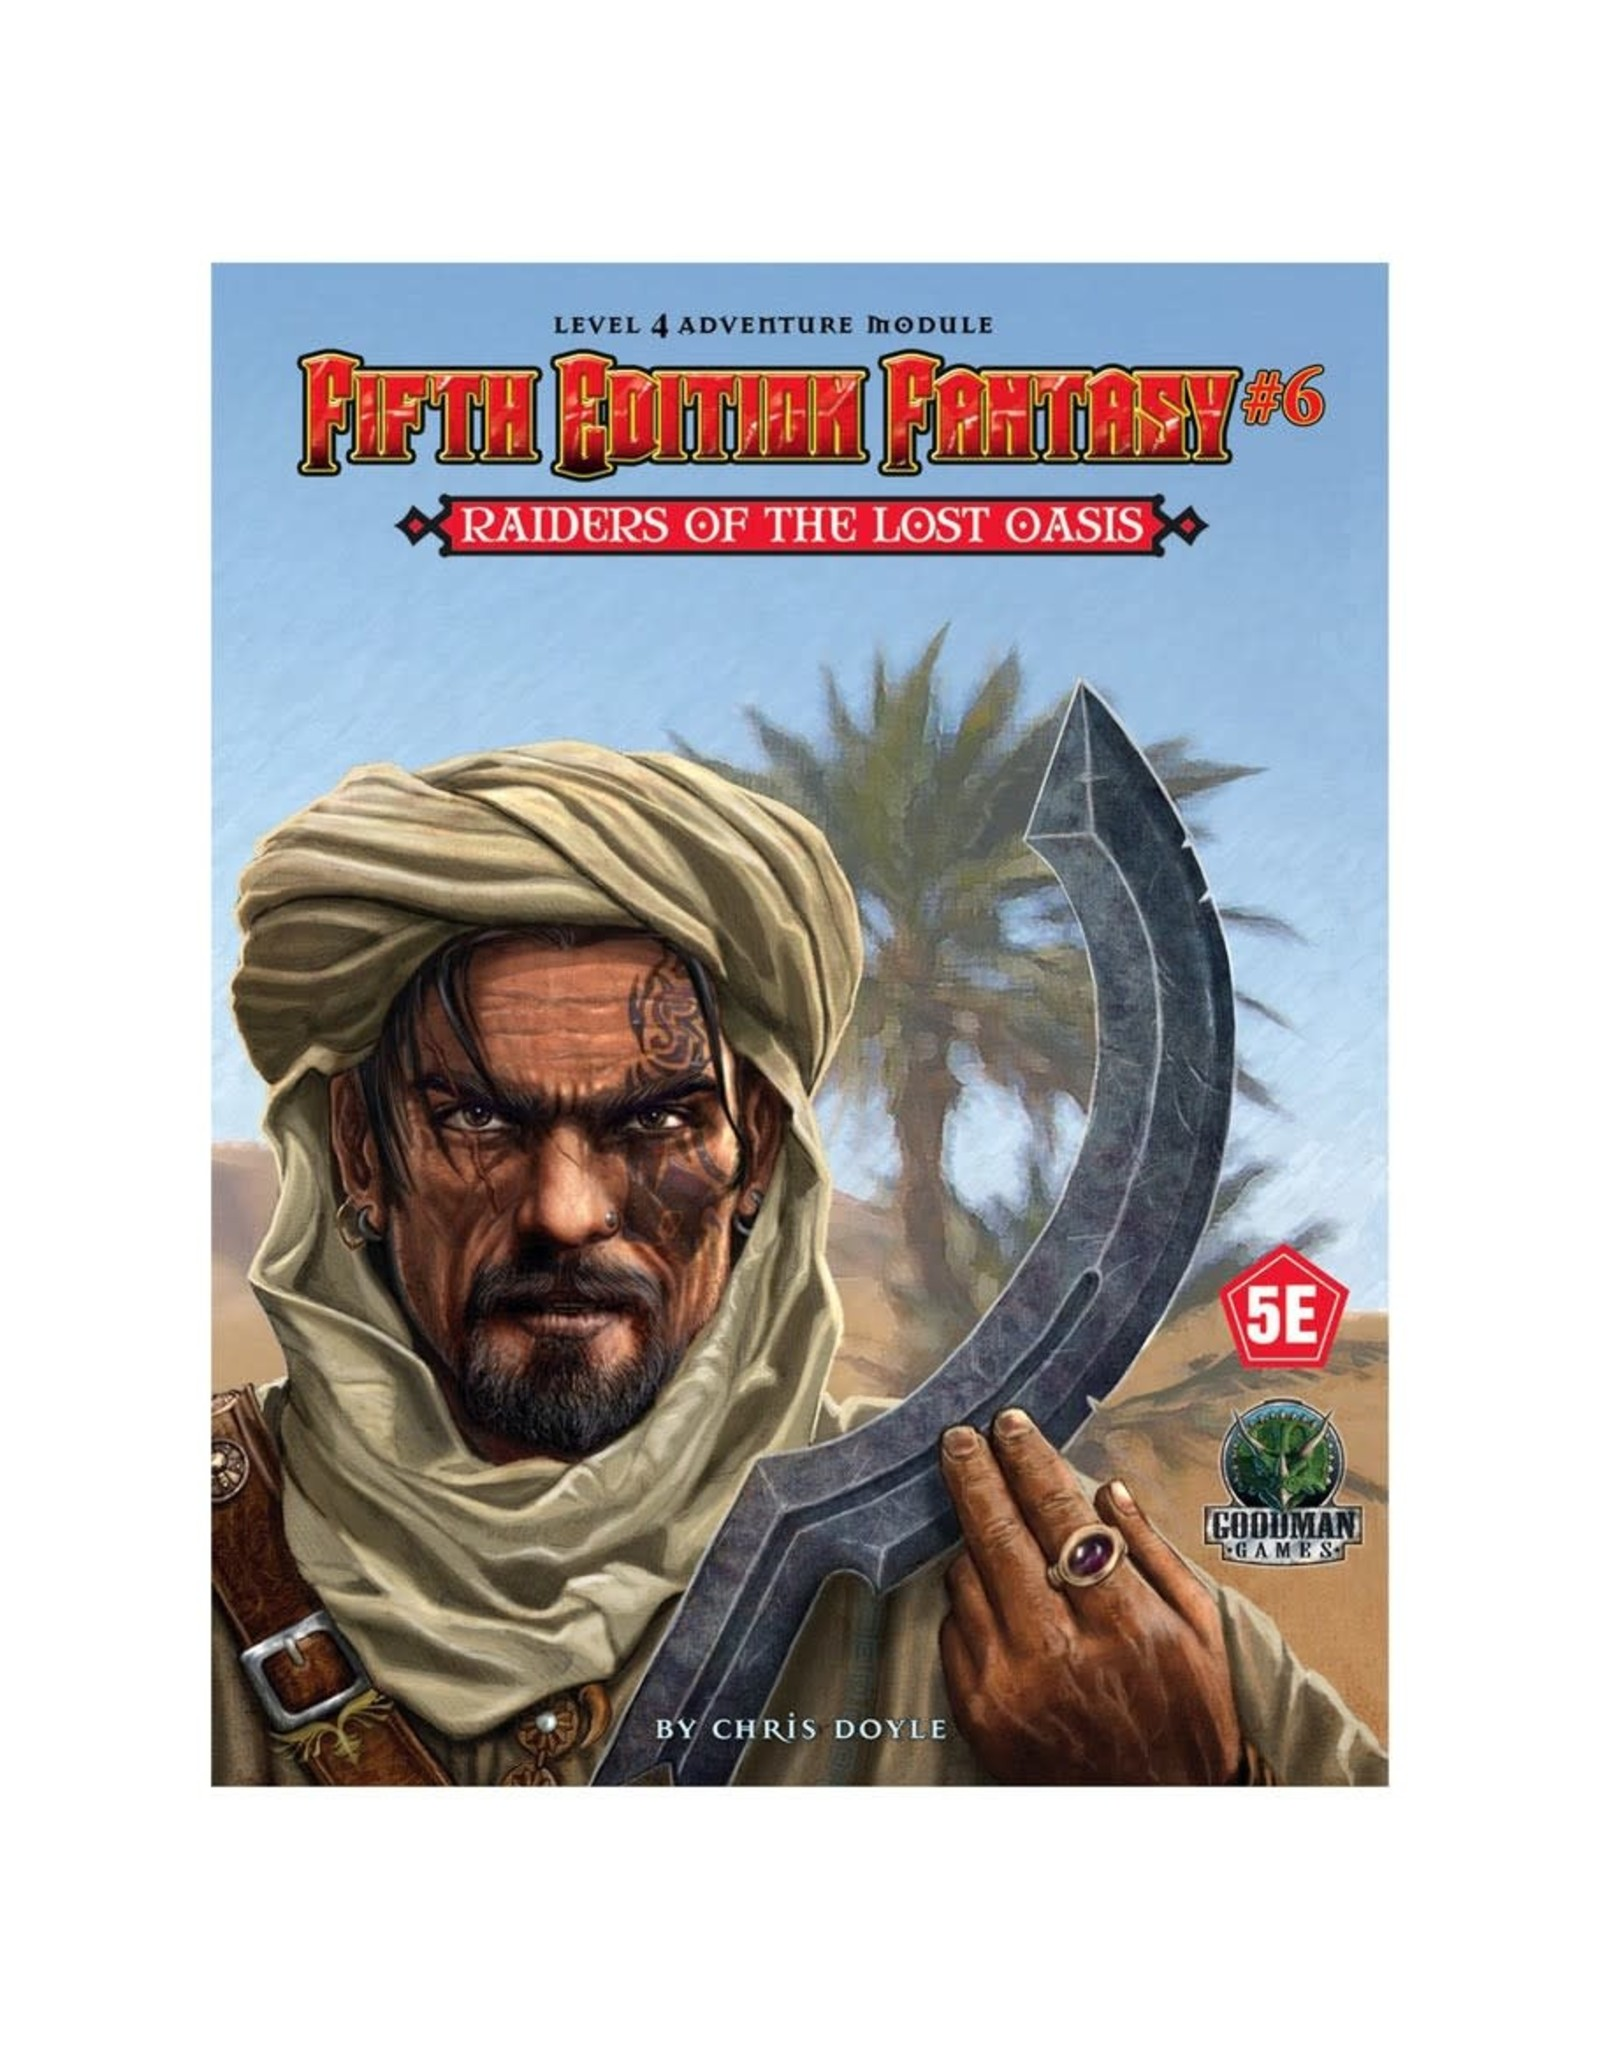 Goodman Games 5th Ed. Fantasy 6: Raiders of the Lost Oasis